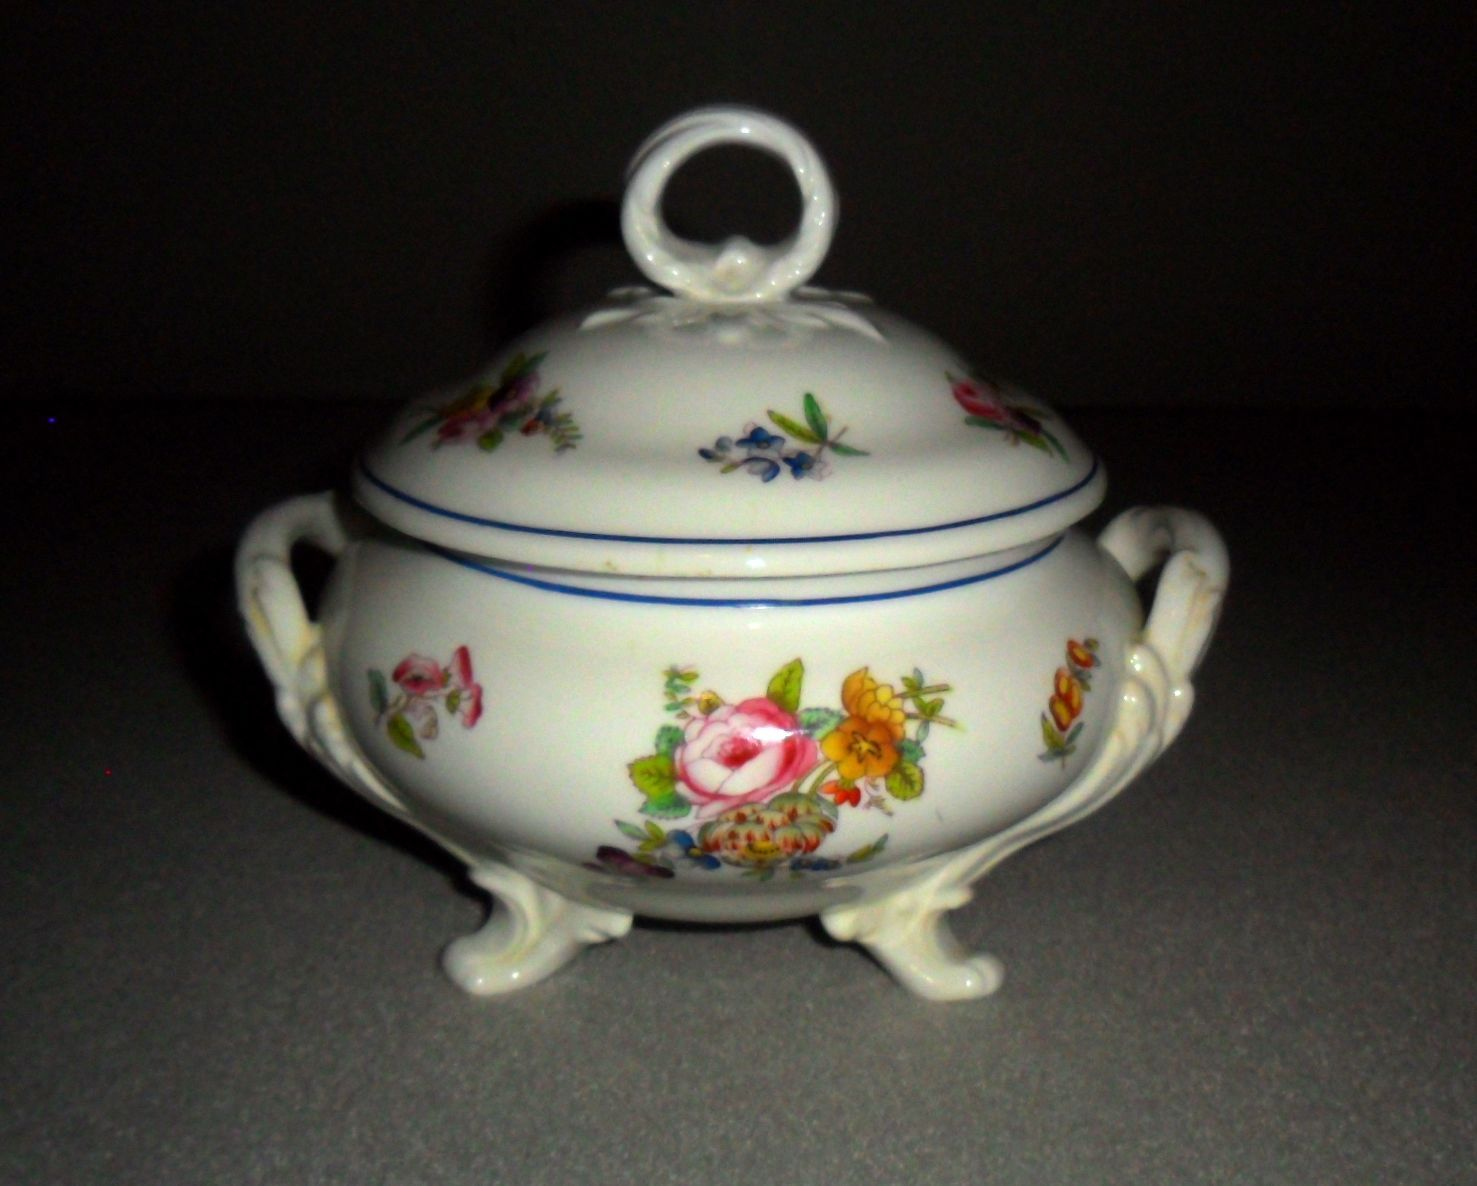 Antique Minton Ironstone Covered Sauce Tureen (very nice)